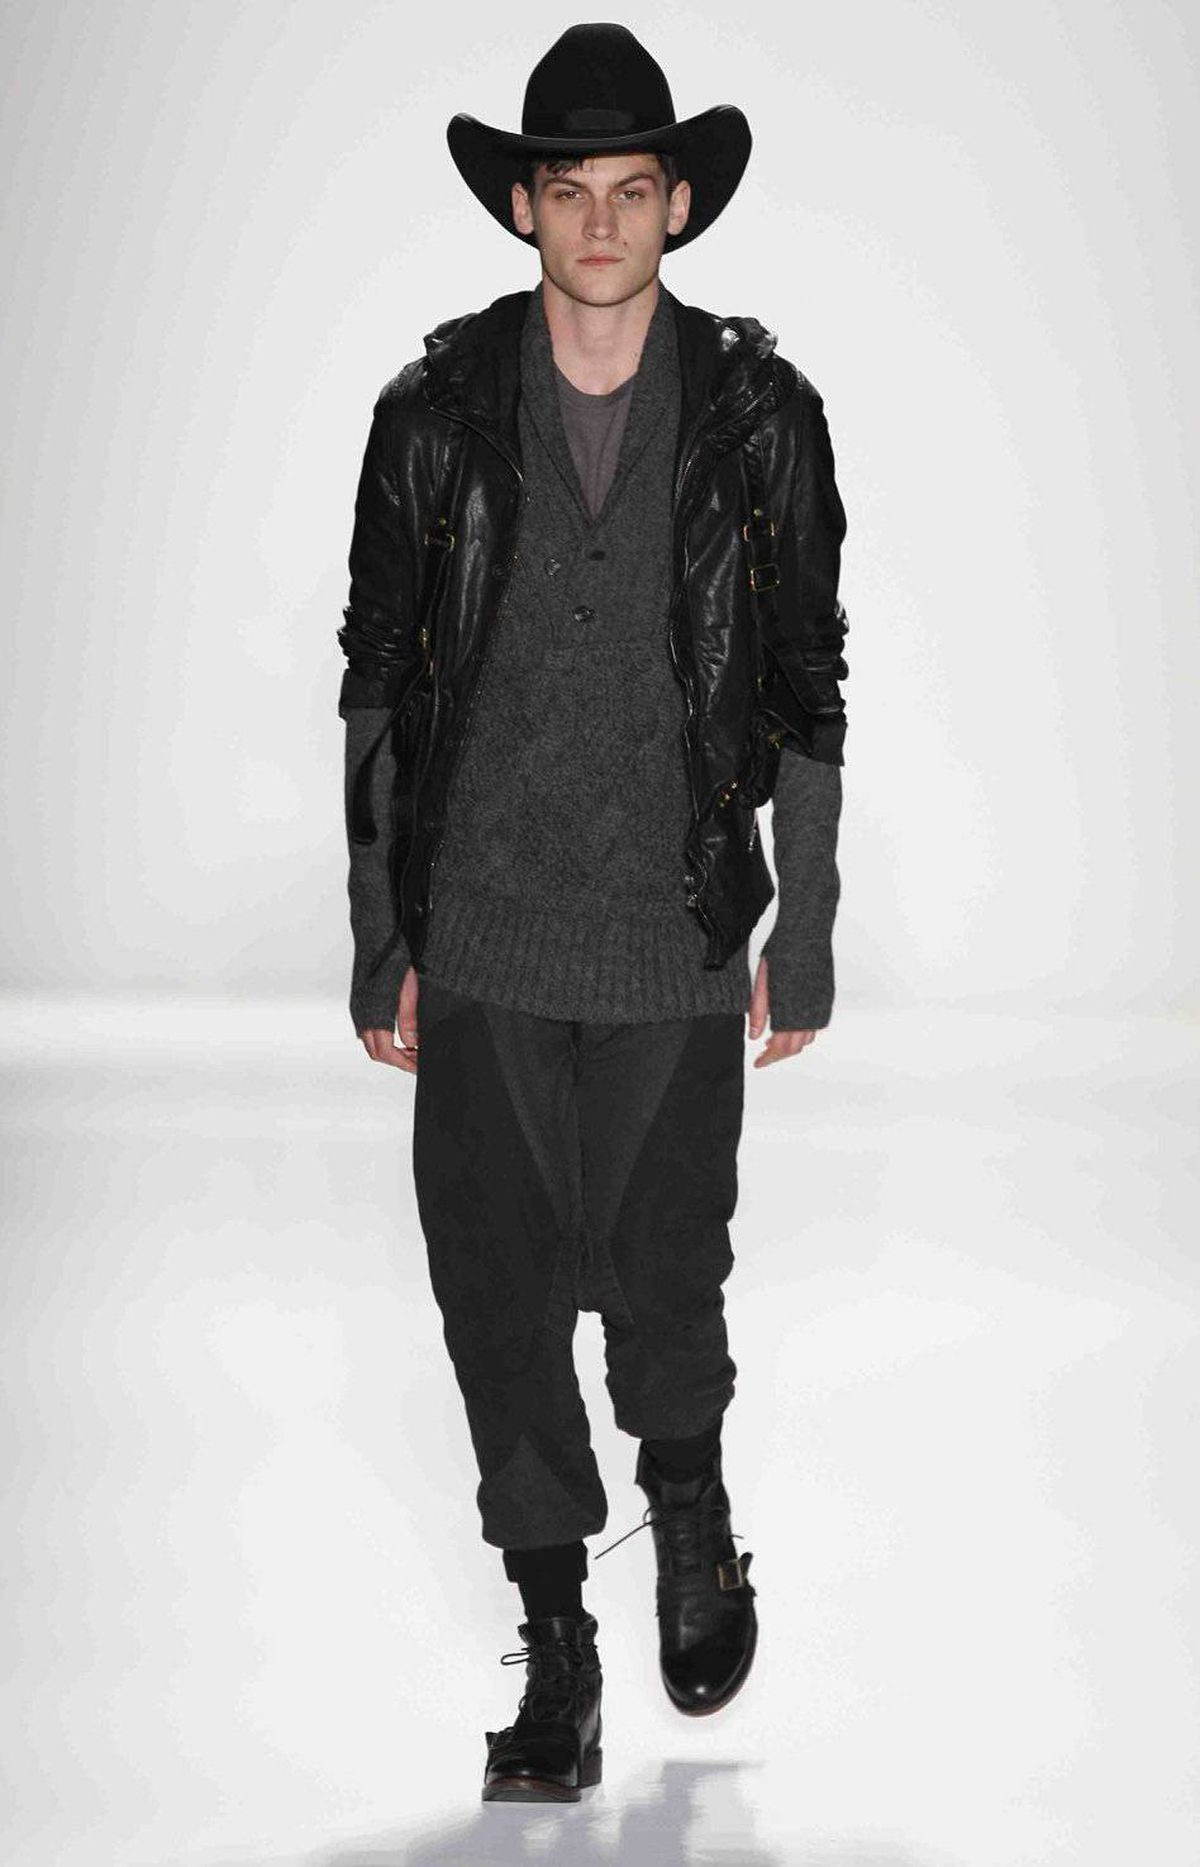 Nicholas K also designs men's wear. Most of the looks had an apocalyptic cowboy look, including saggy trousers, which continue to appear on runways, whether or not men take to them.